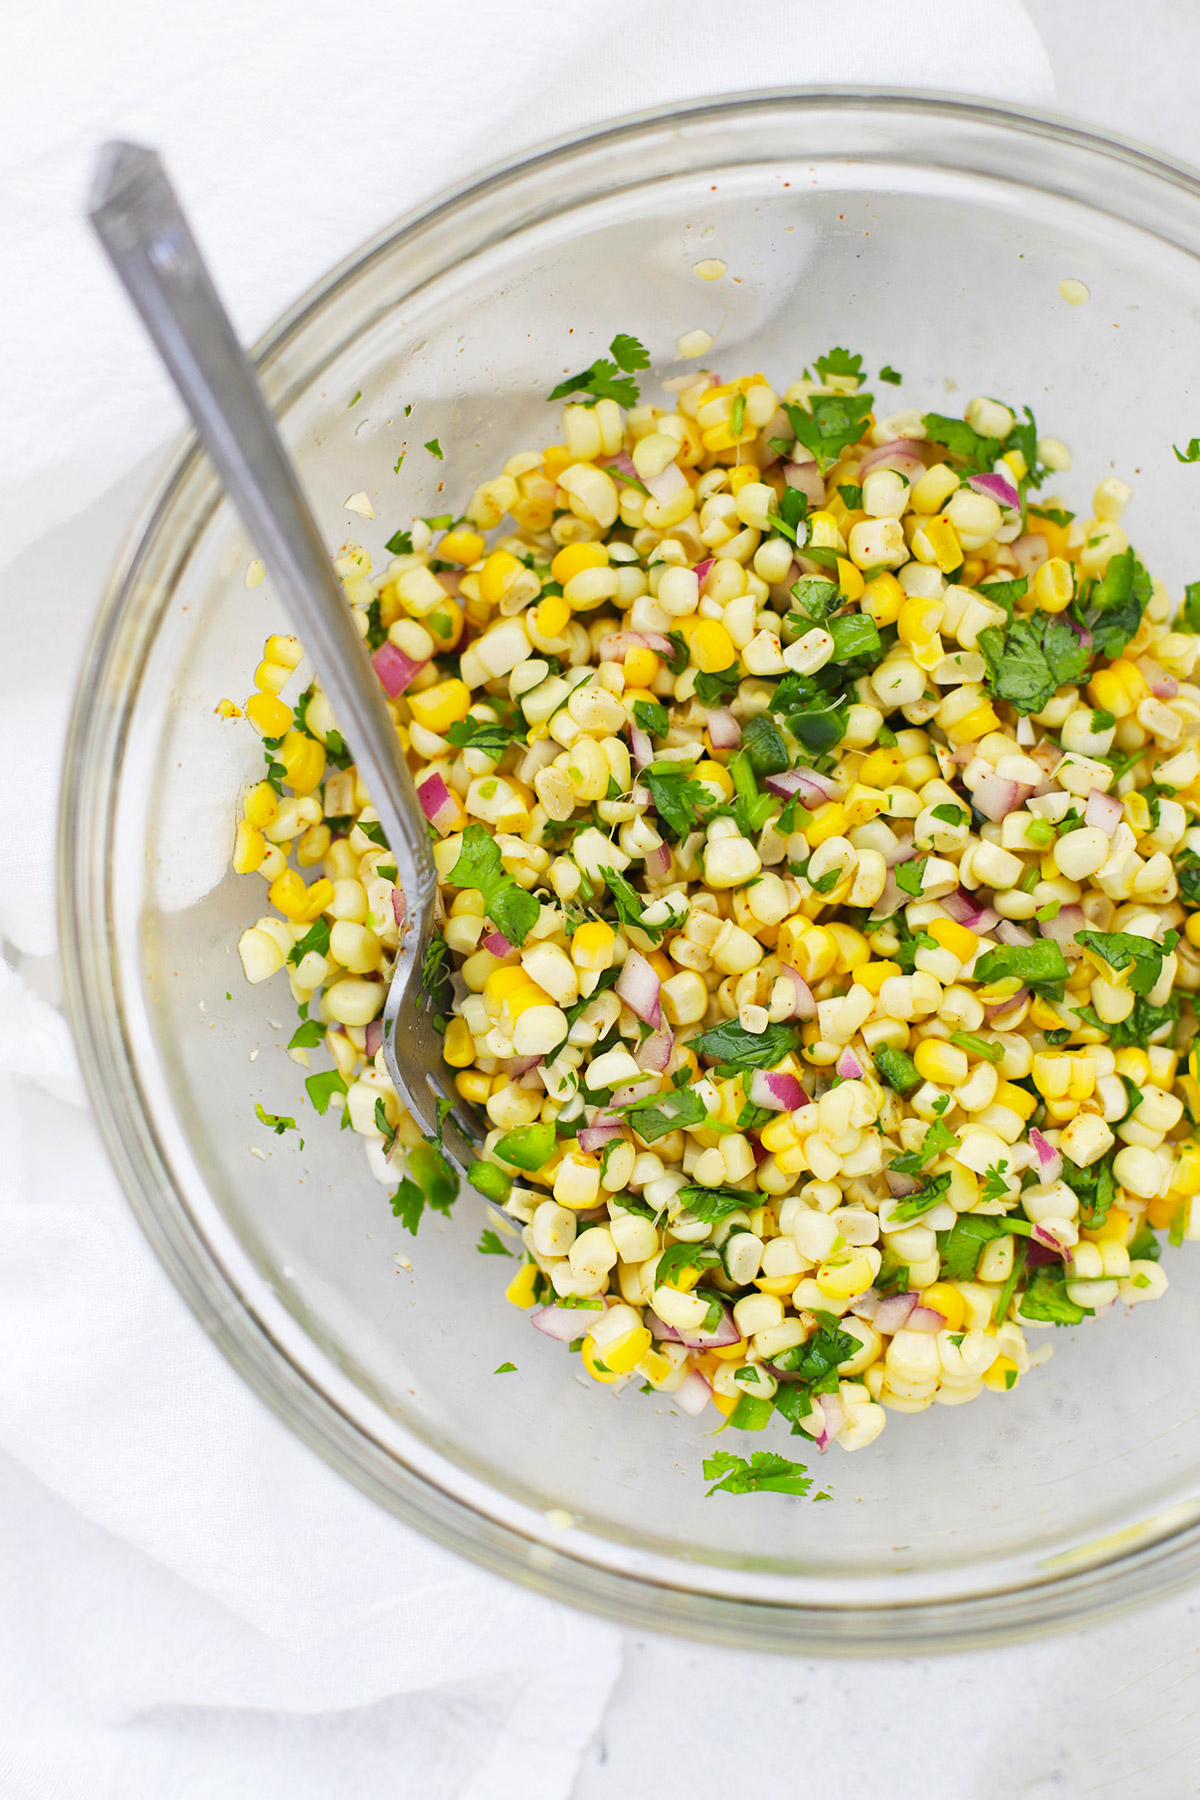 Overhead view of freshly mixed chipotle copycat corn salsa in a glass bowl